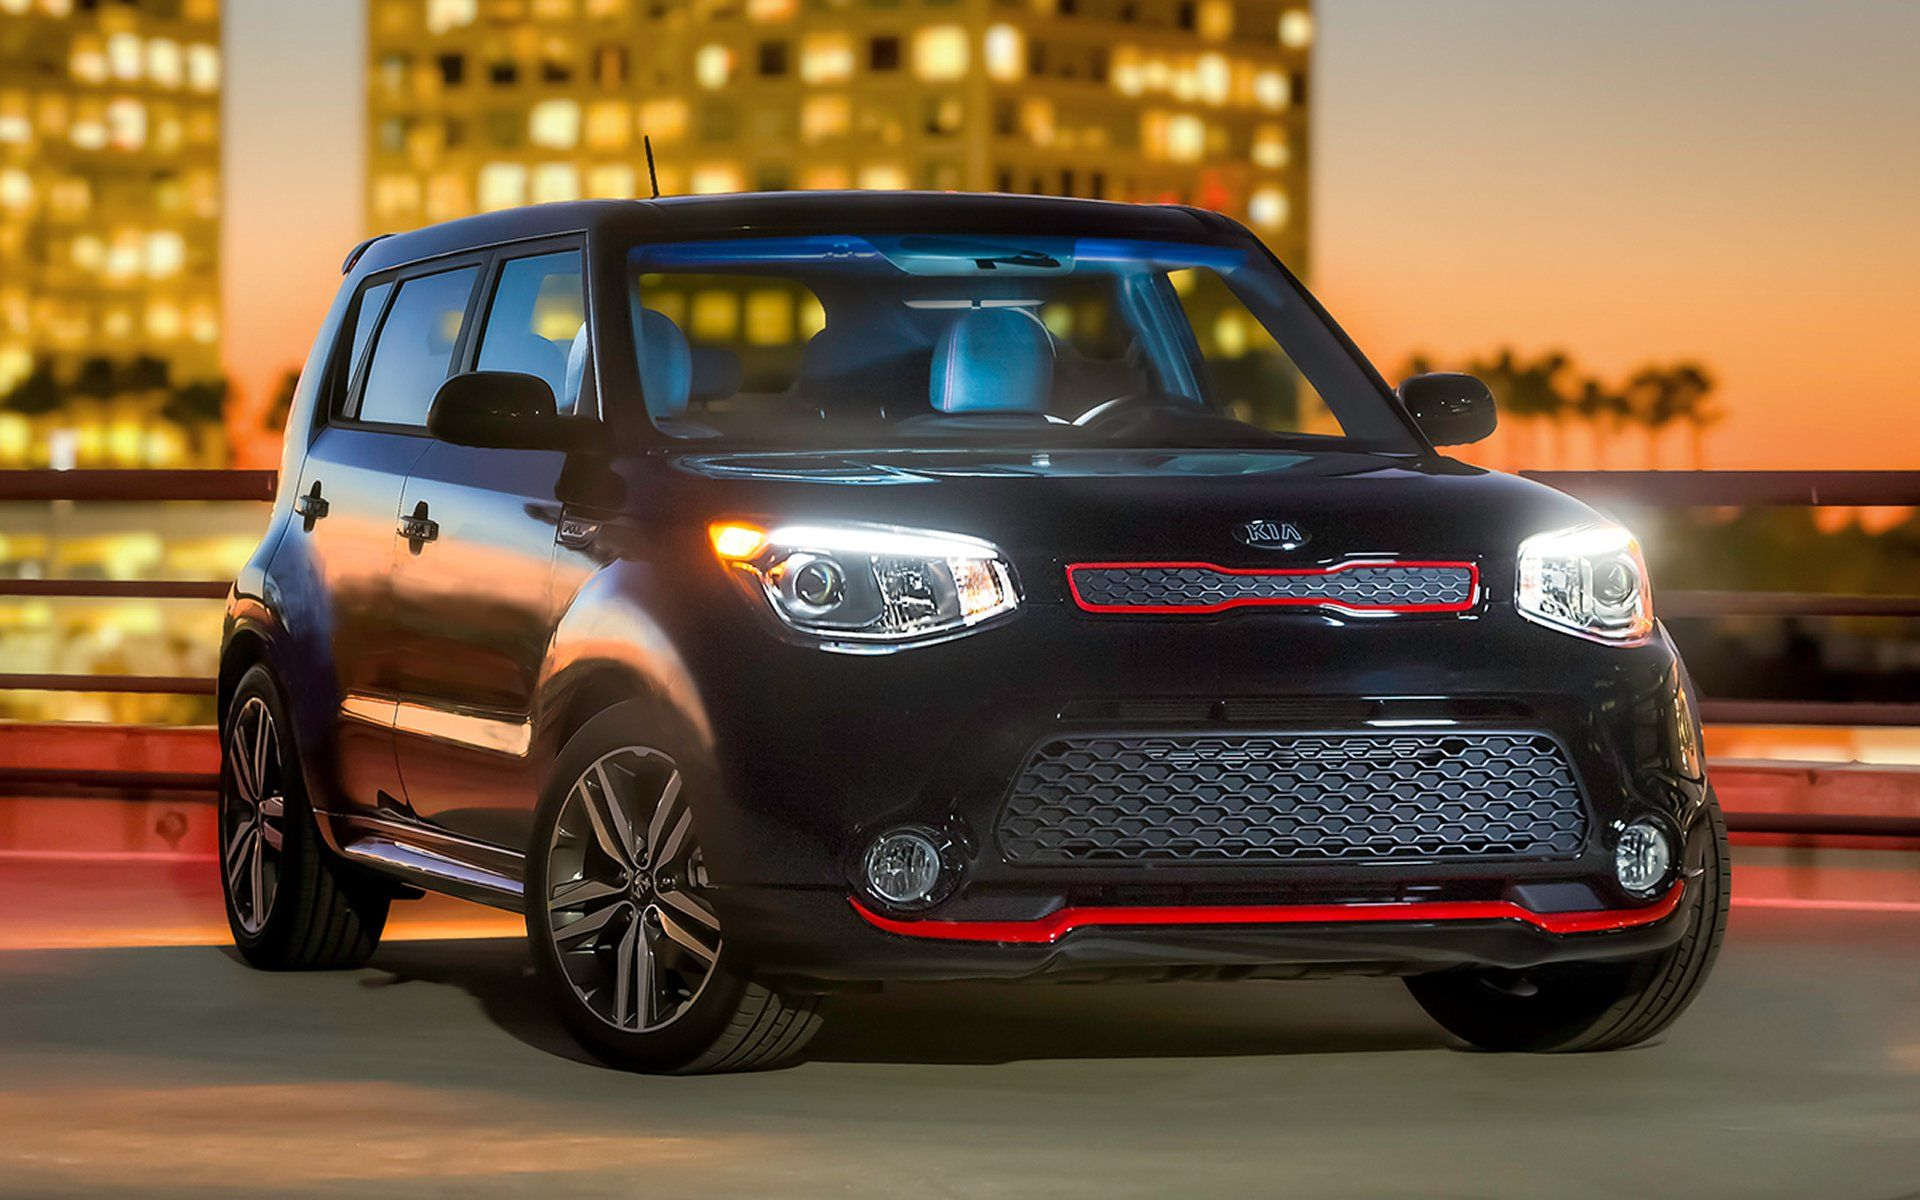 Black Kia Soul With Red Trim And Sunroof 2015 Photo Gallery